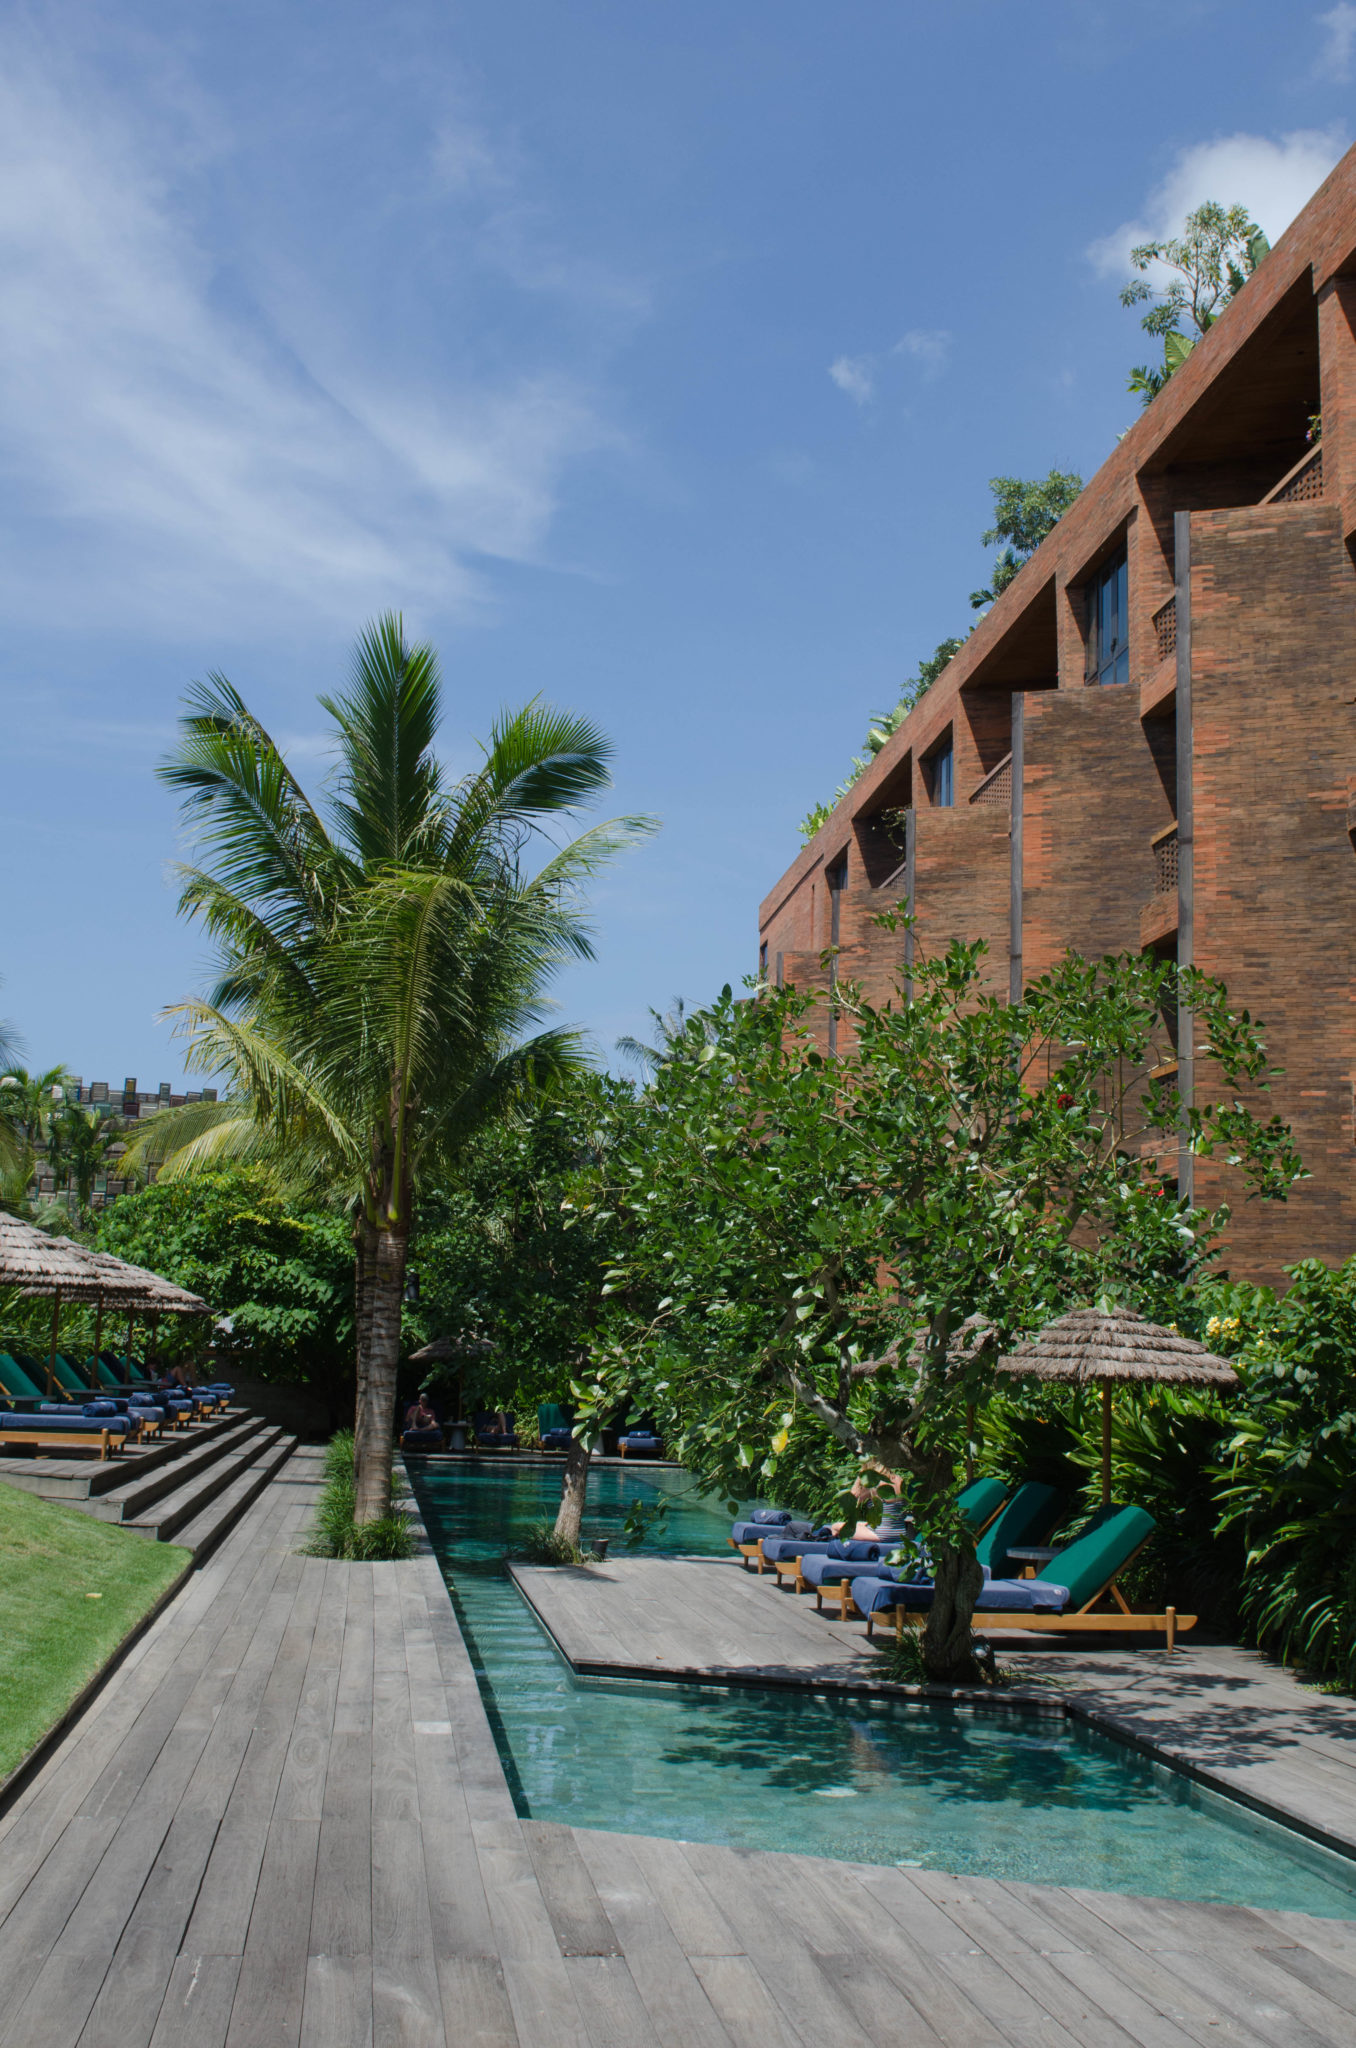 Katamama Hotel Bali: Hot days in Bali can best be spent at the pool.